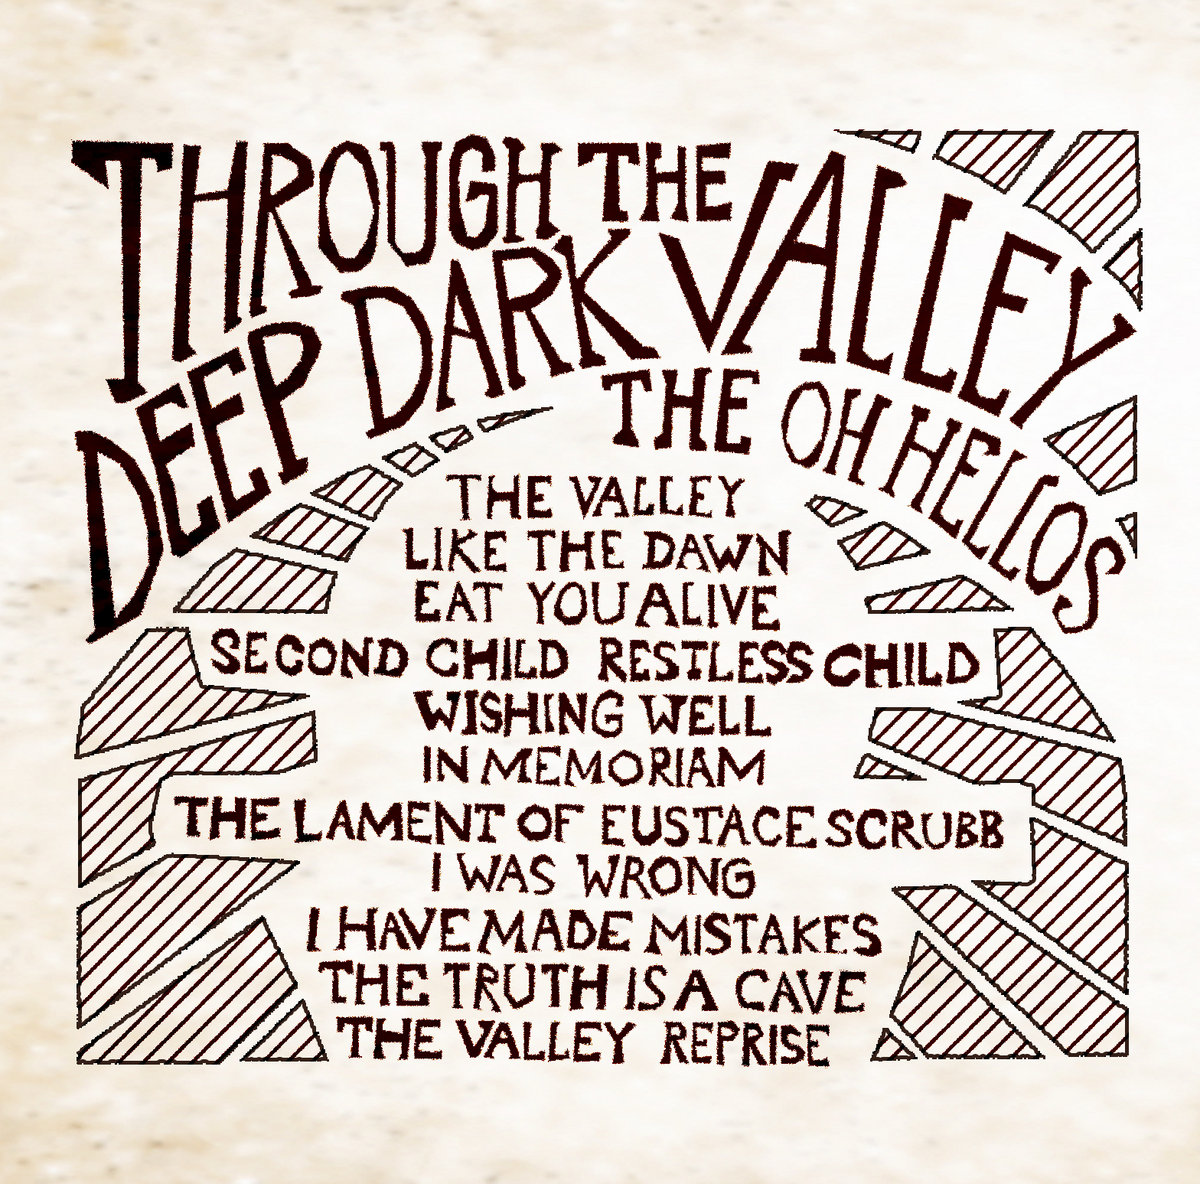 Through The Deep Dark Valley The Oh Hellos